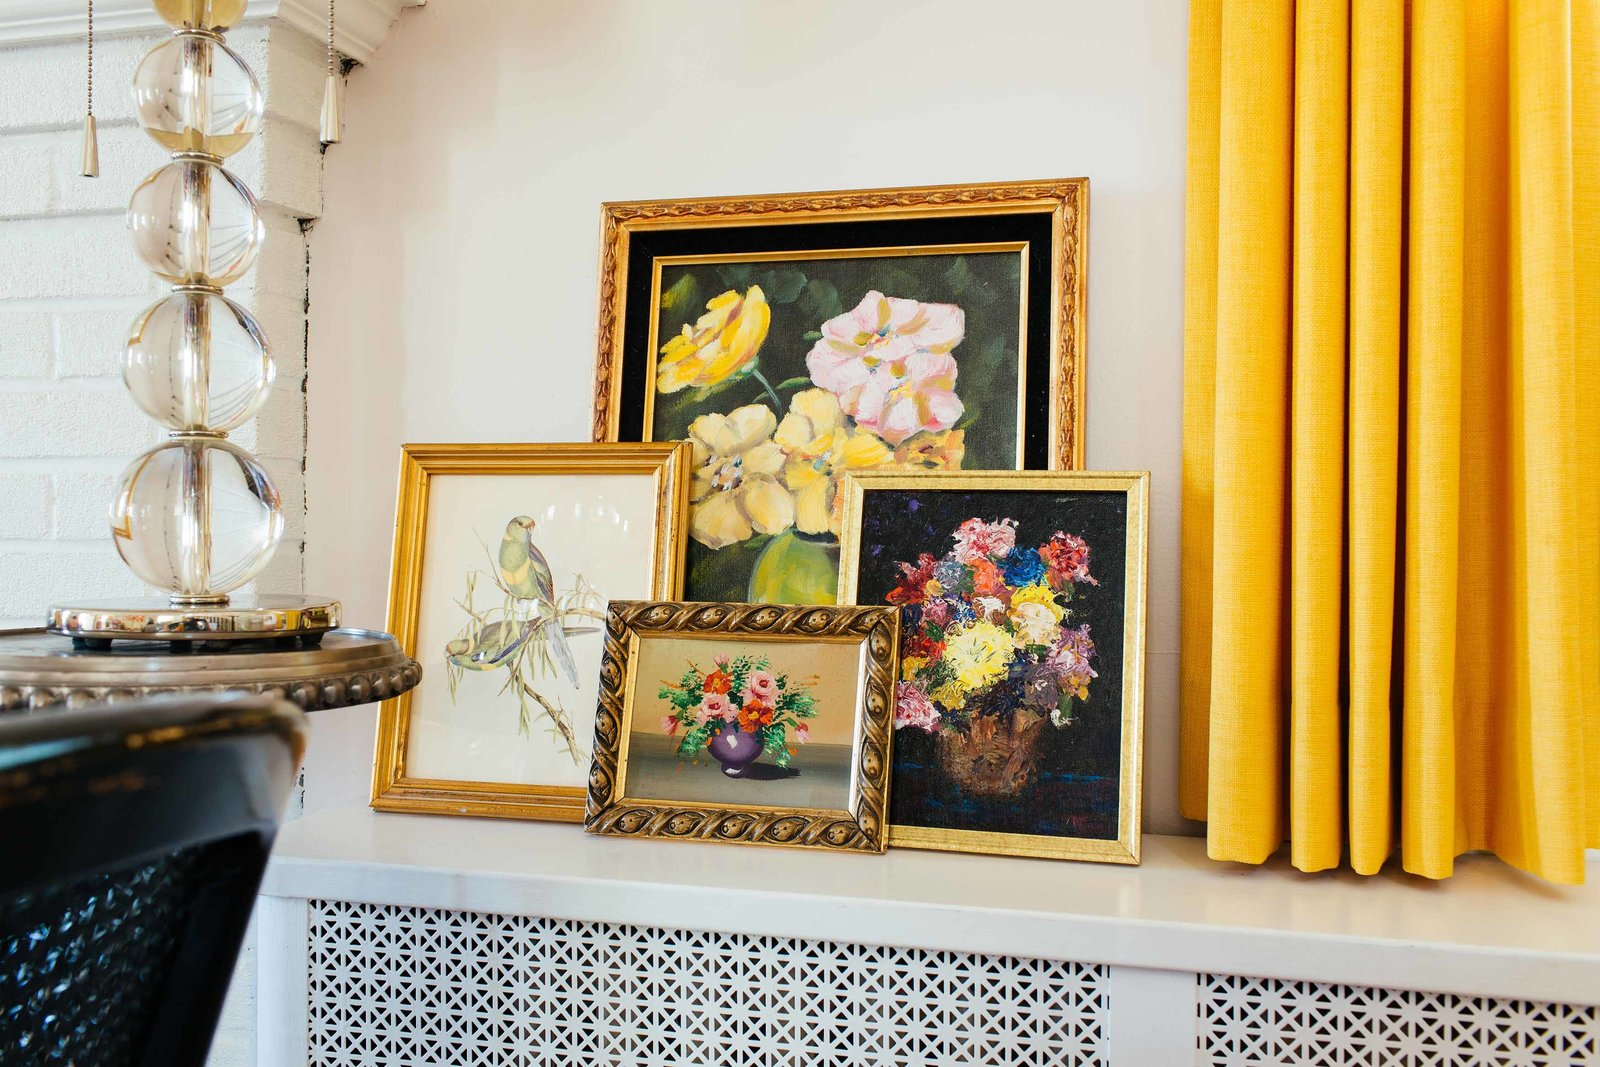 Four framed art prints on a shelf beside a yellow drape.